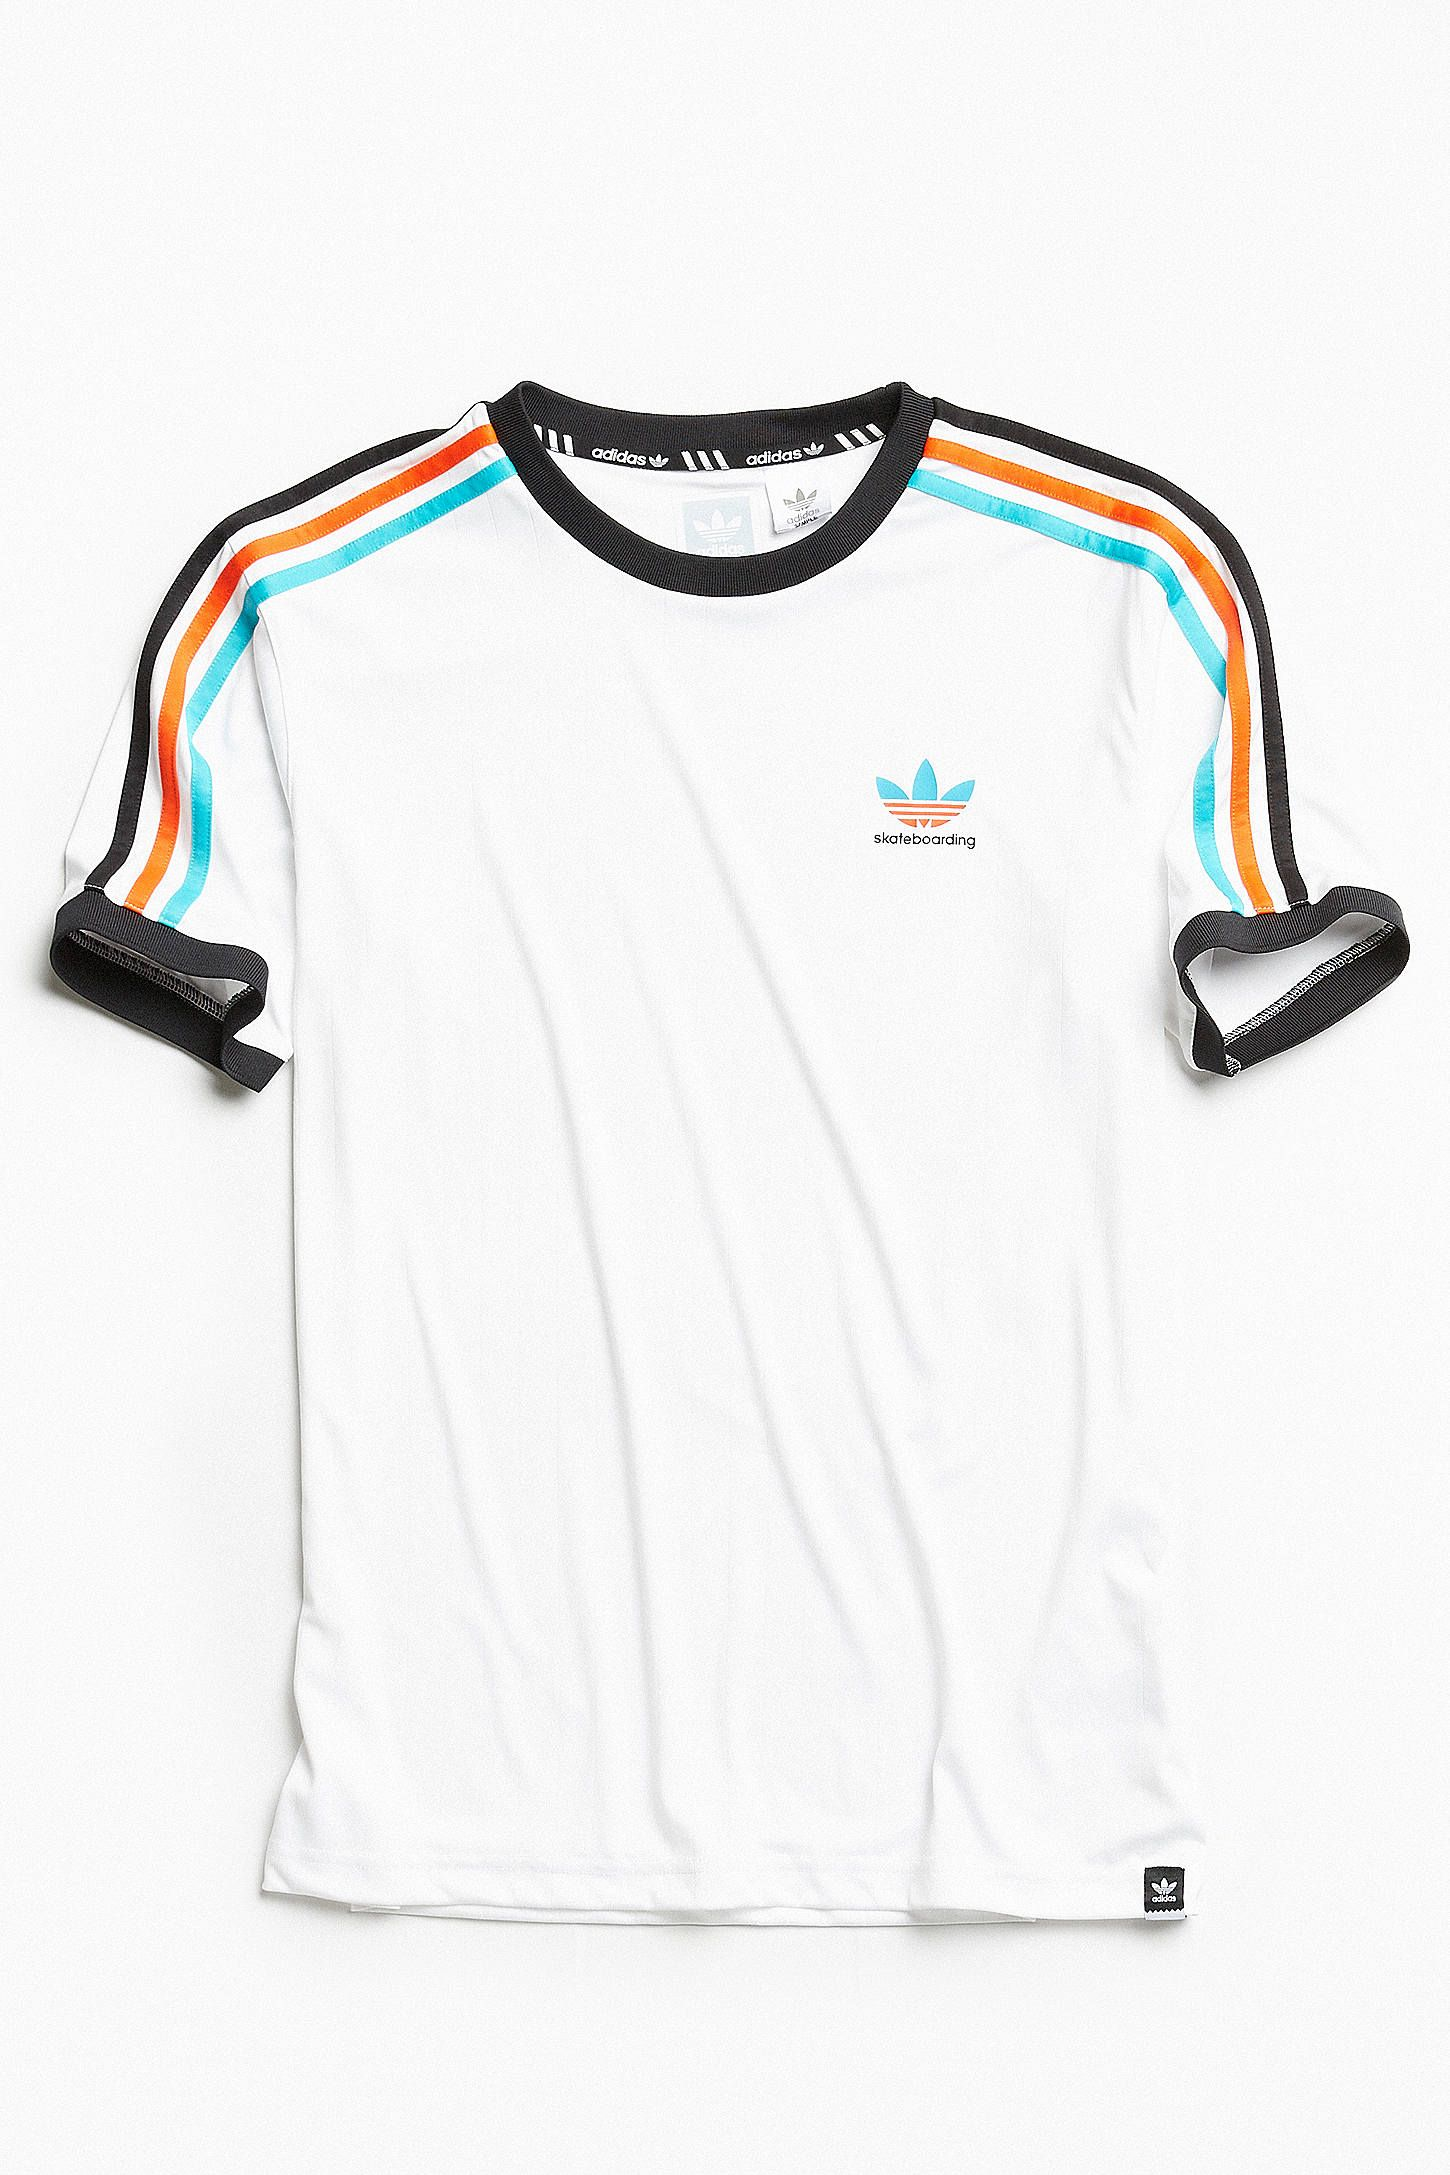 1fbc0d9923db9 Slide View  1  adidas Skateboarding Club Jersey Tee